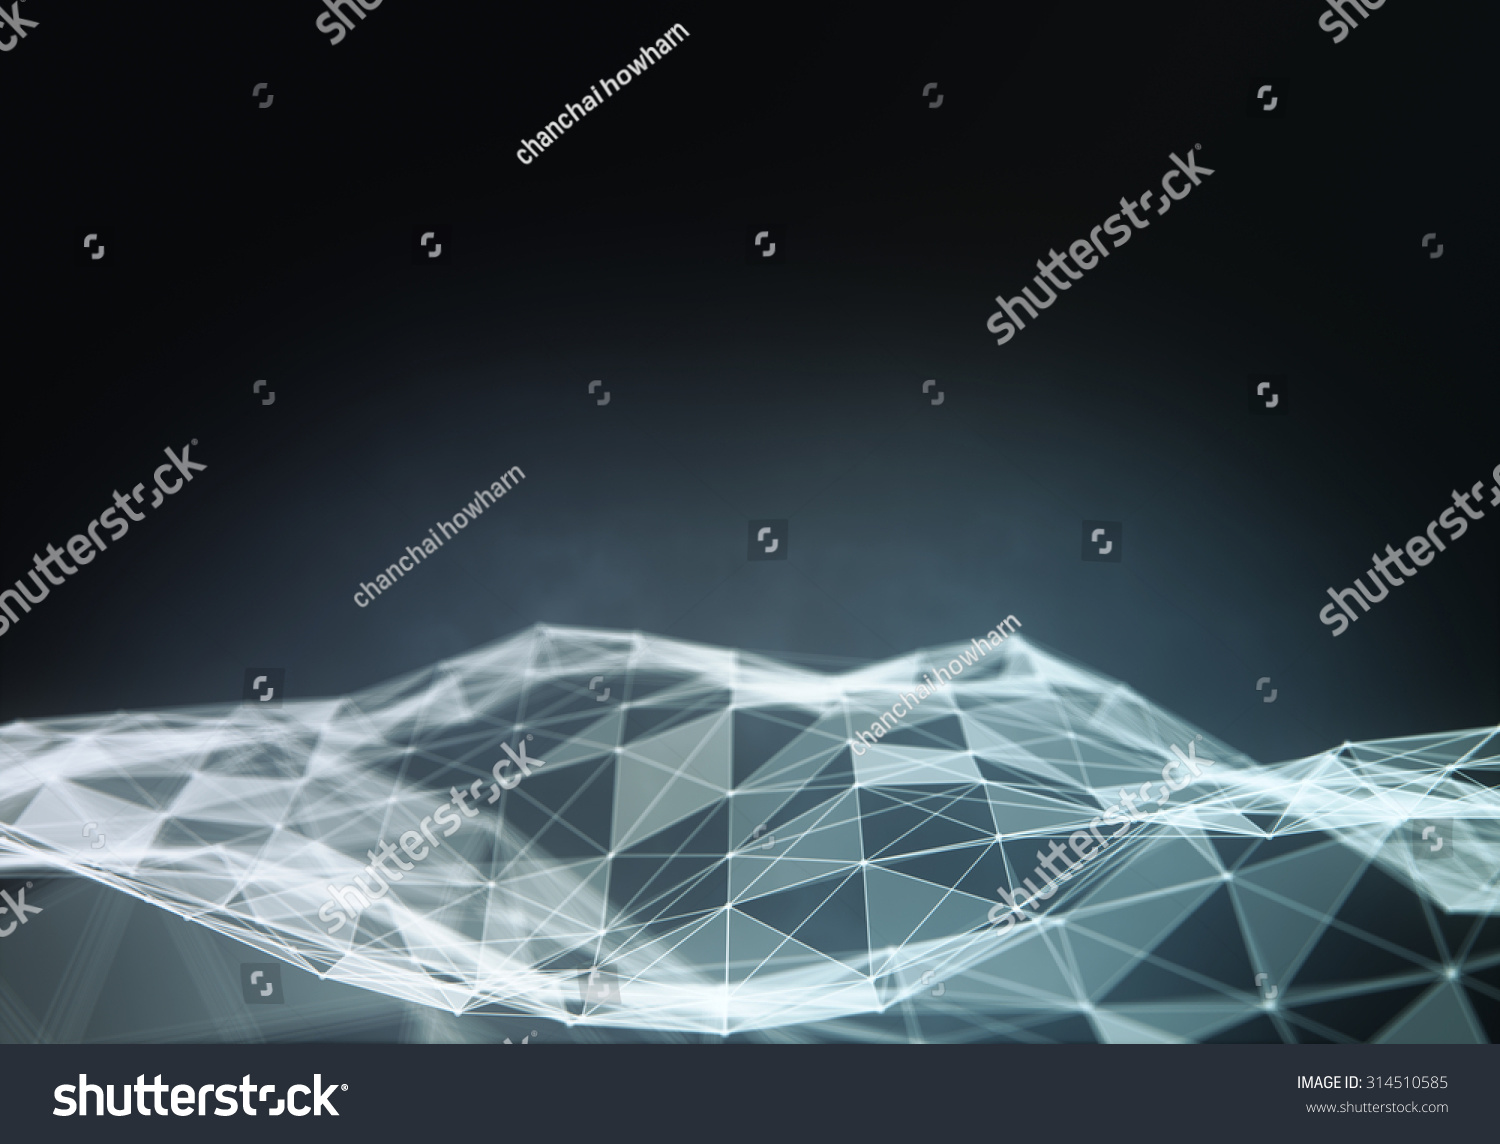 Abstract moving background white dots connected on fresh green stock - Abstract Polygonal Space Low Poly Dark Background With Connecting Dots And Lines Connection Structure